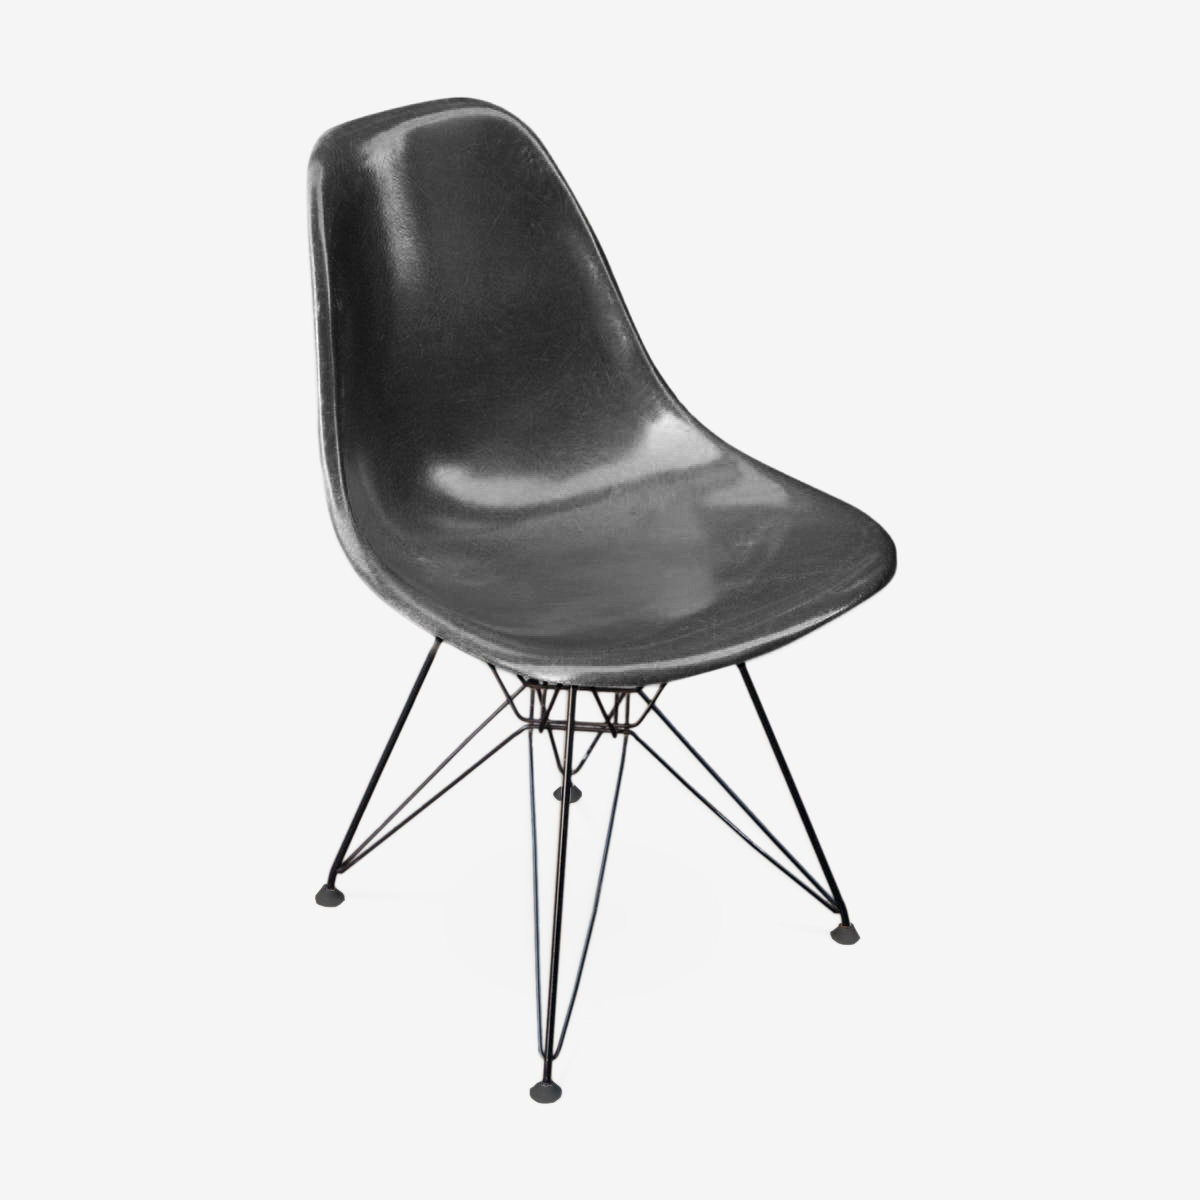 Chair of Charles & Ray Eames Herman Miller foot Eiffel 1960 edition DSR